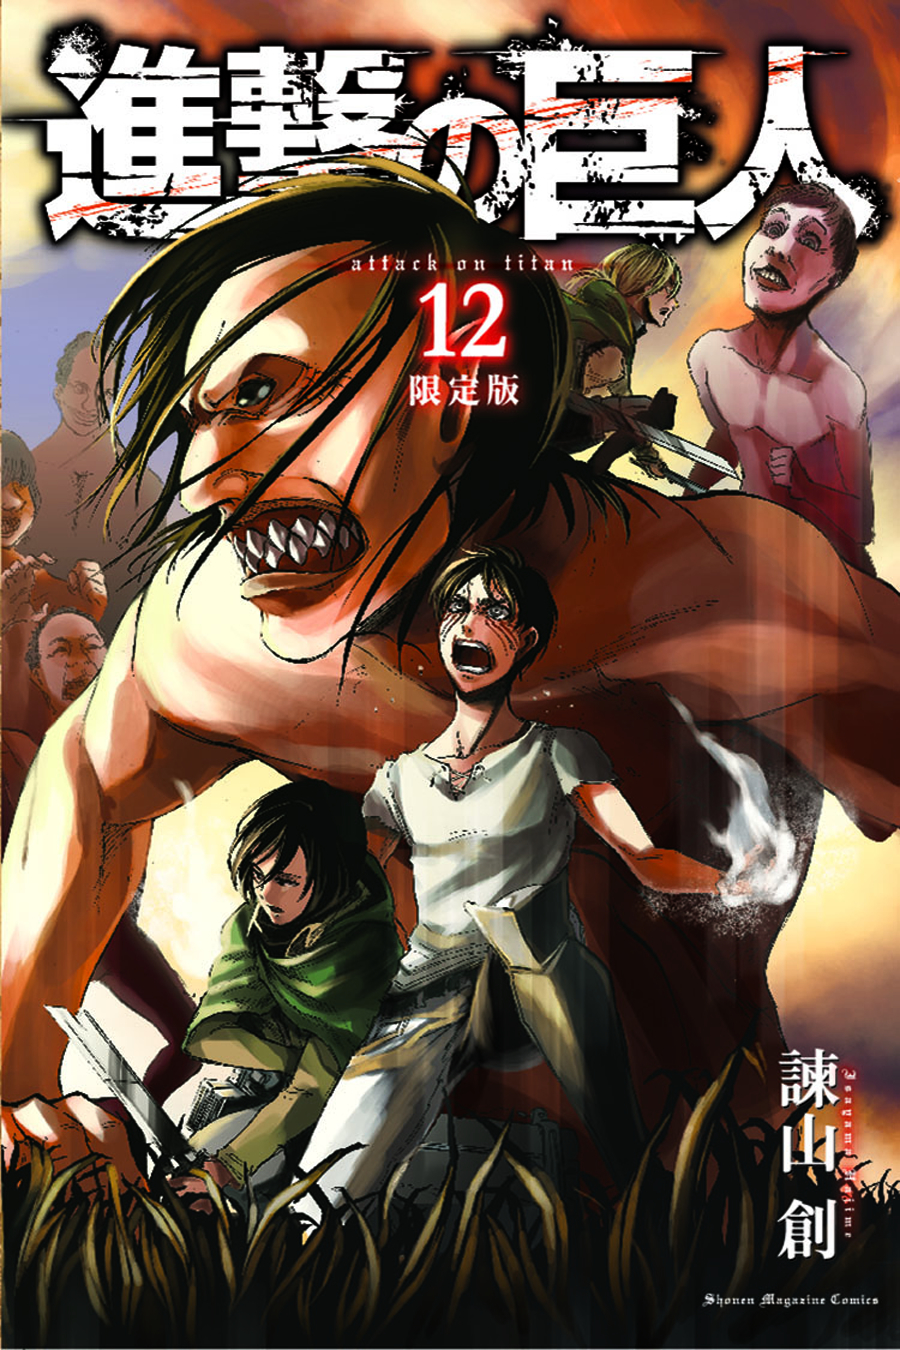 ATTACK ON TITAN GN VOL 12